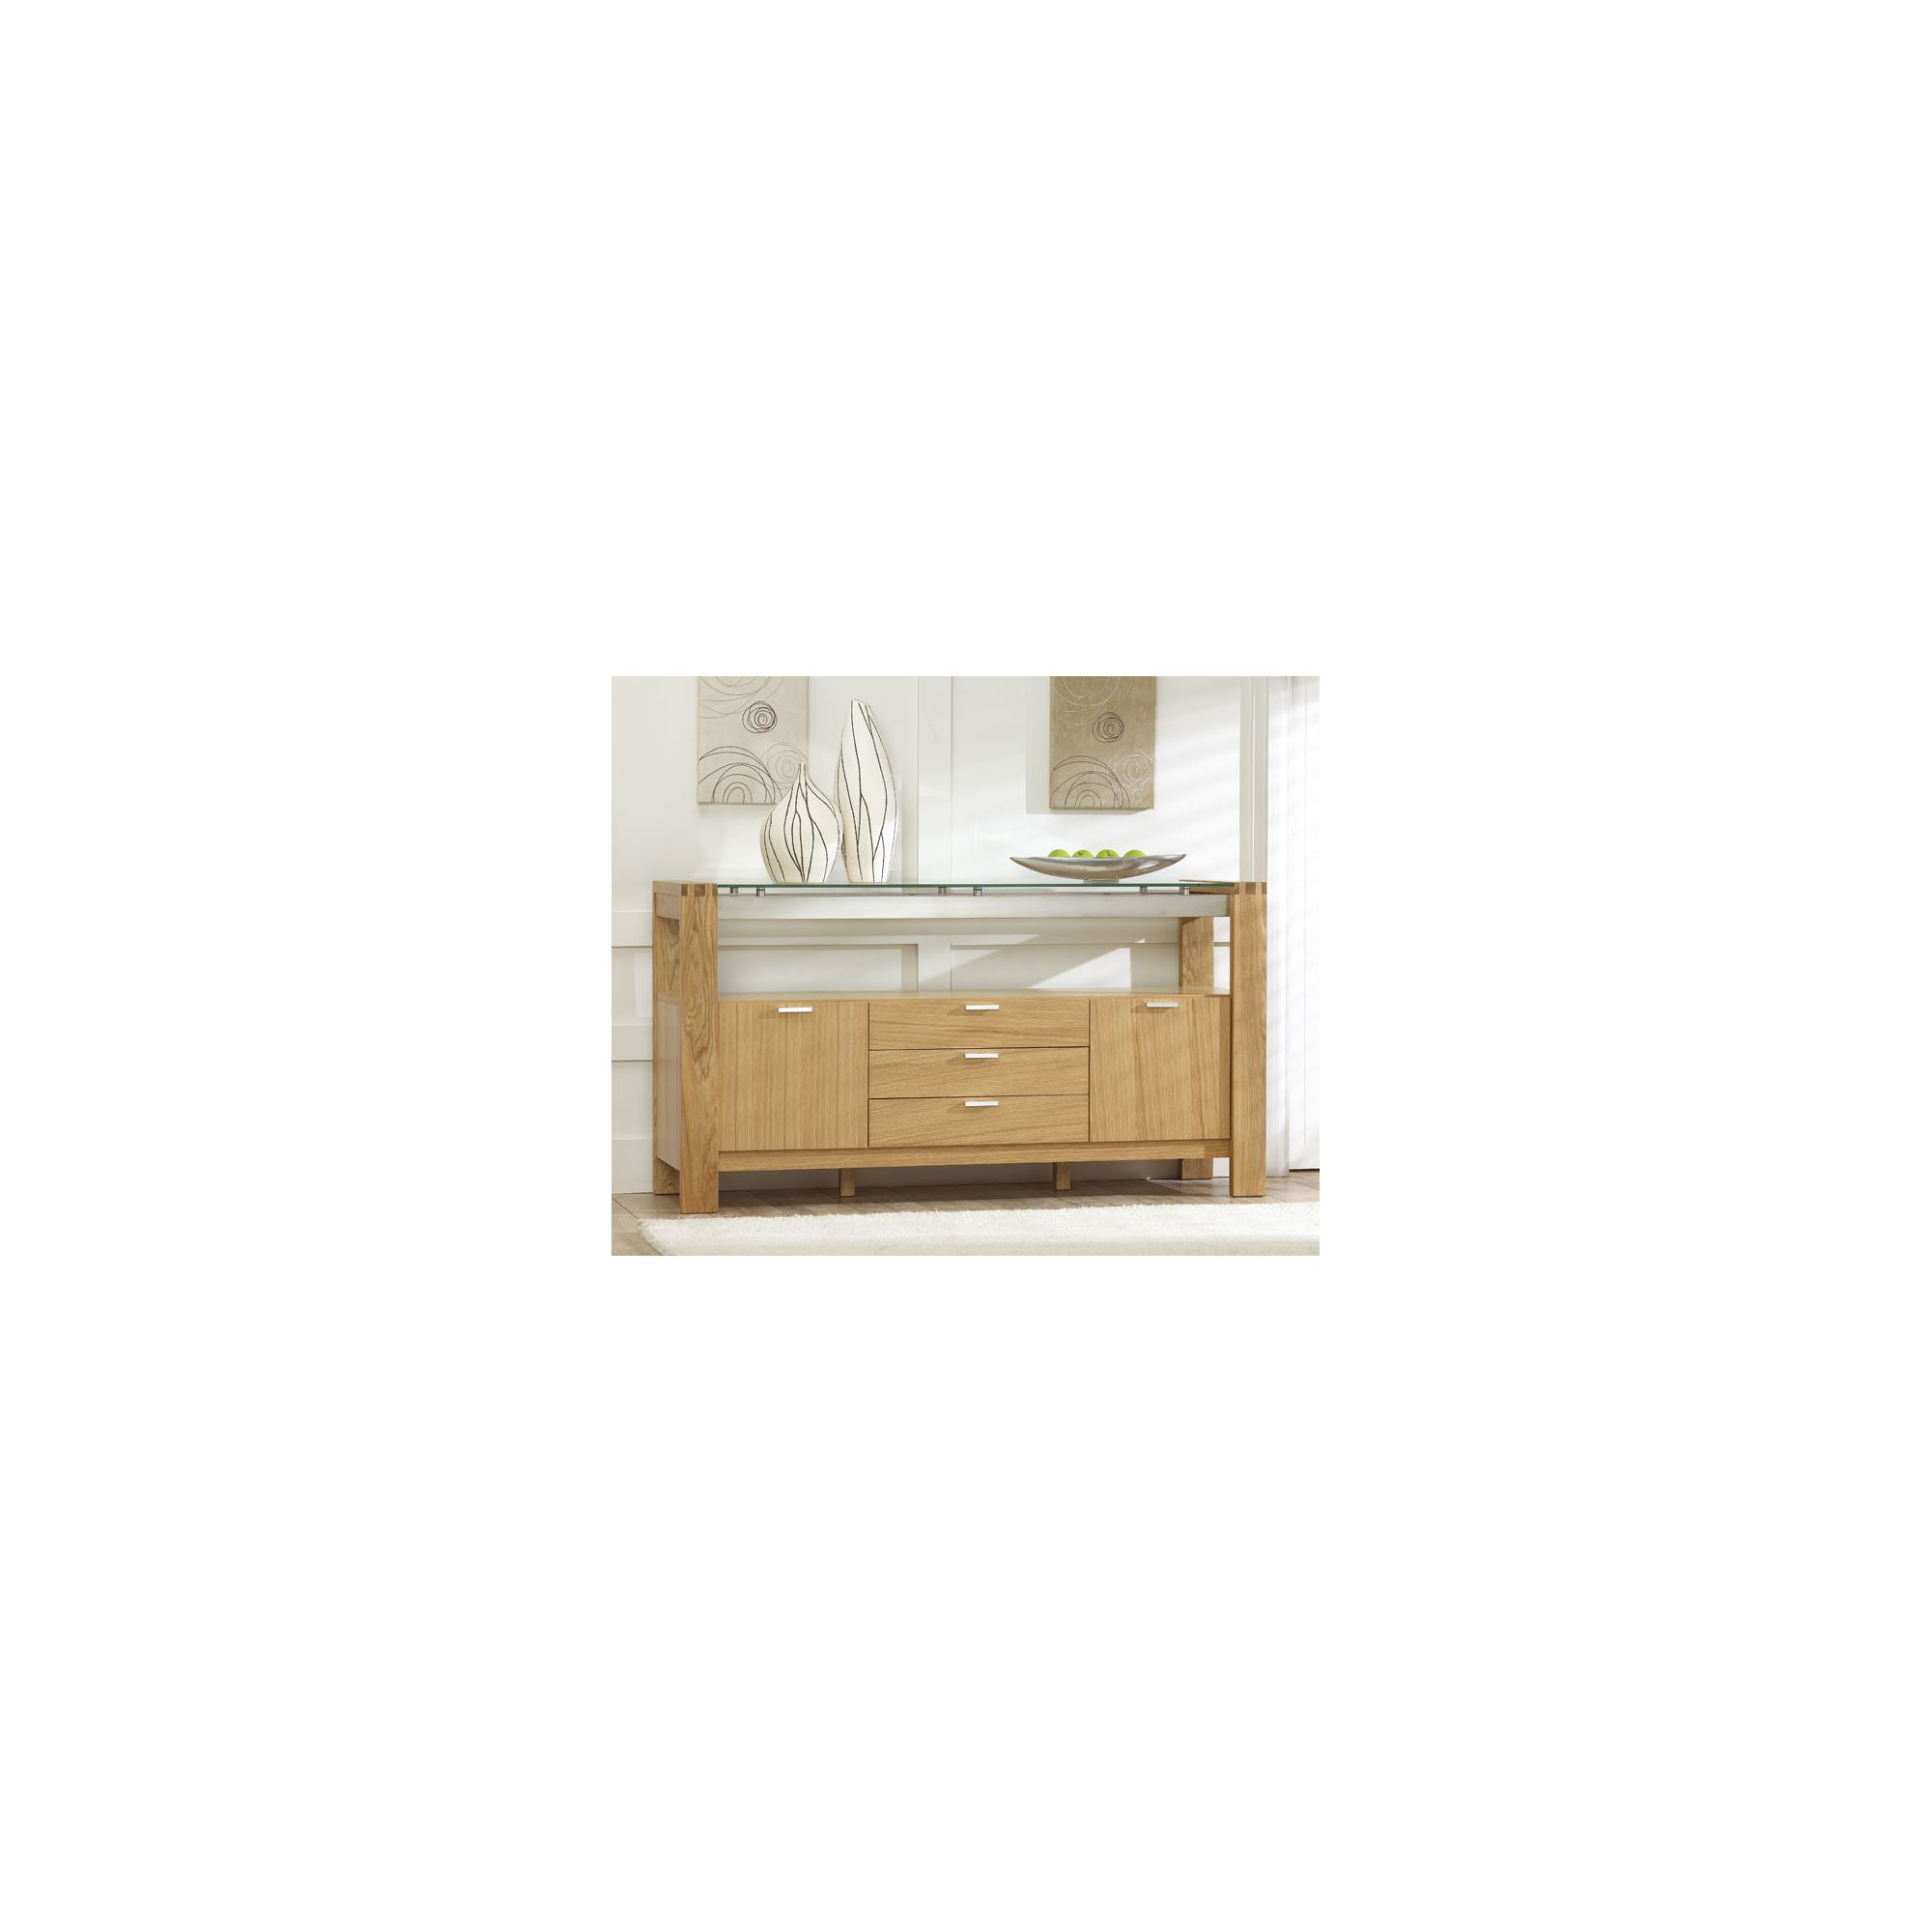 Mark Harris Furniture Roma Sideboard - Oak at Tesco Direct